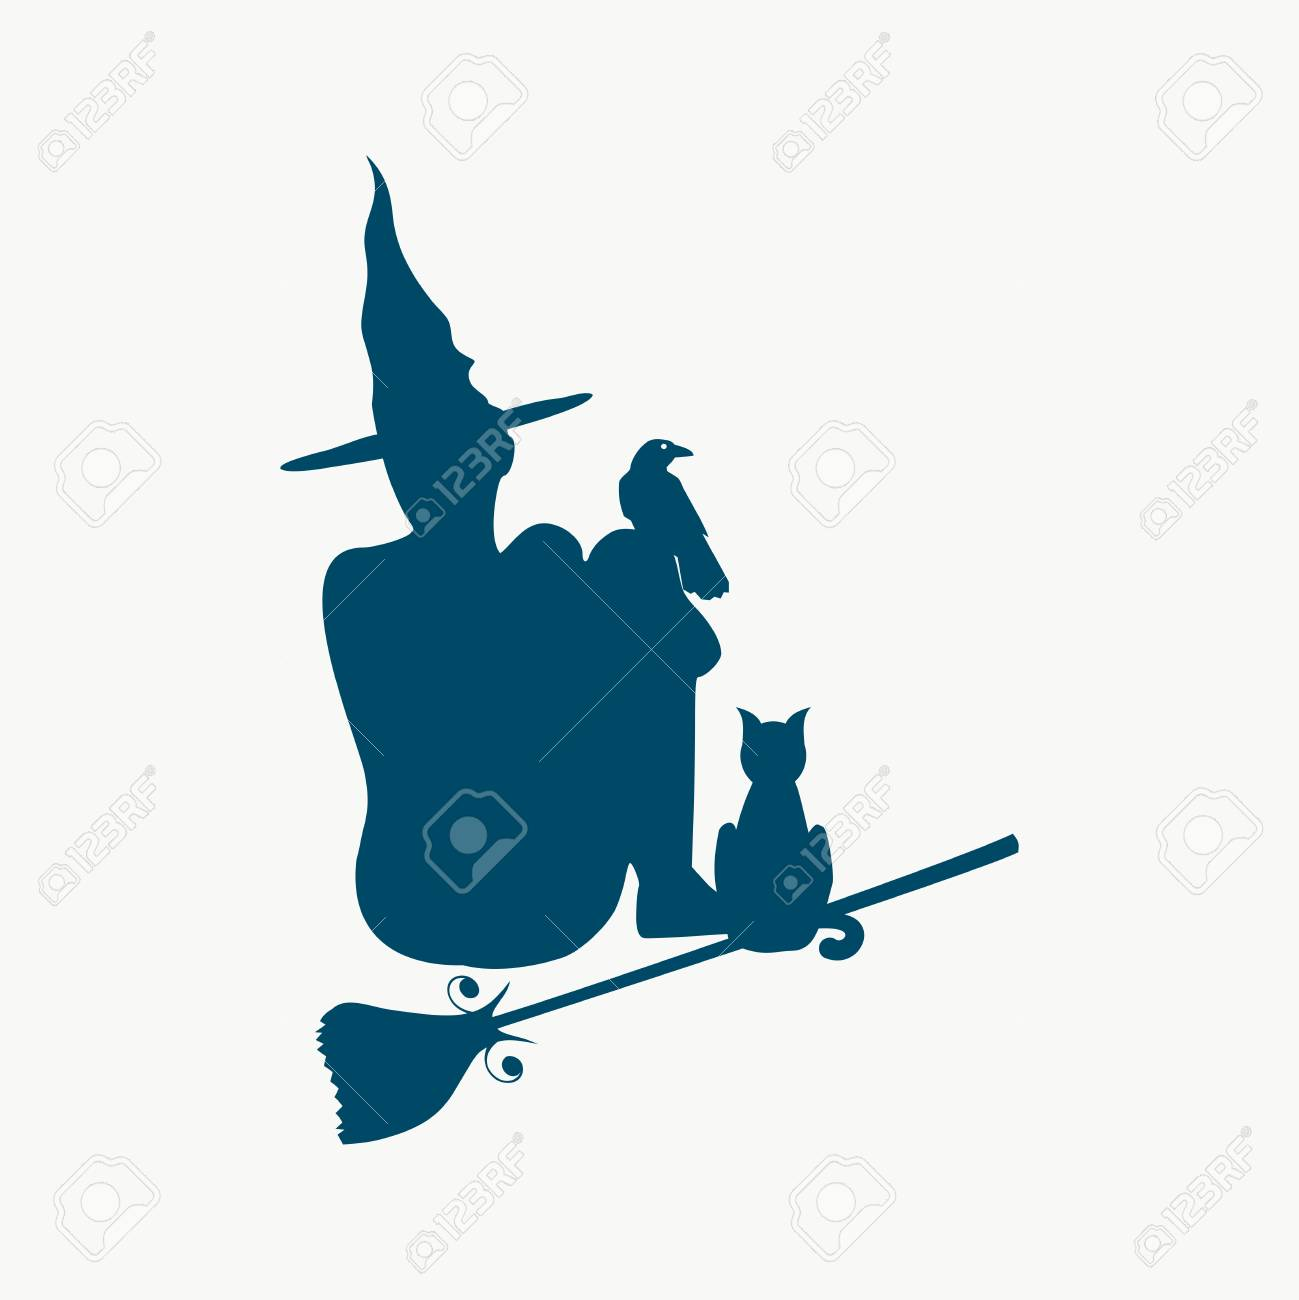 Illustration of sitting young witch. Witch silhouette with a broomstick, cat and raven. Halloween relative image - 108249831